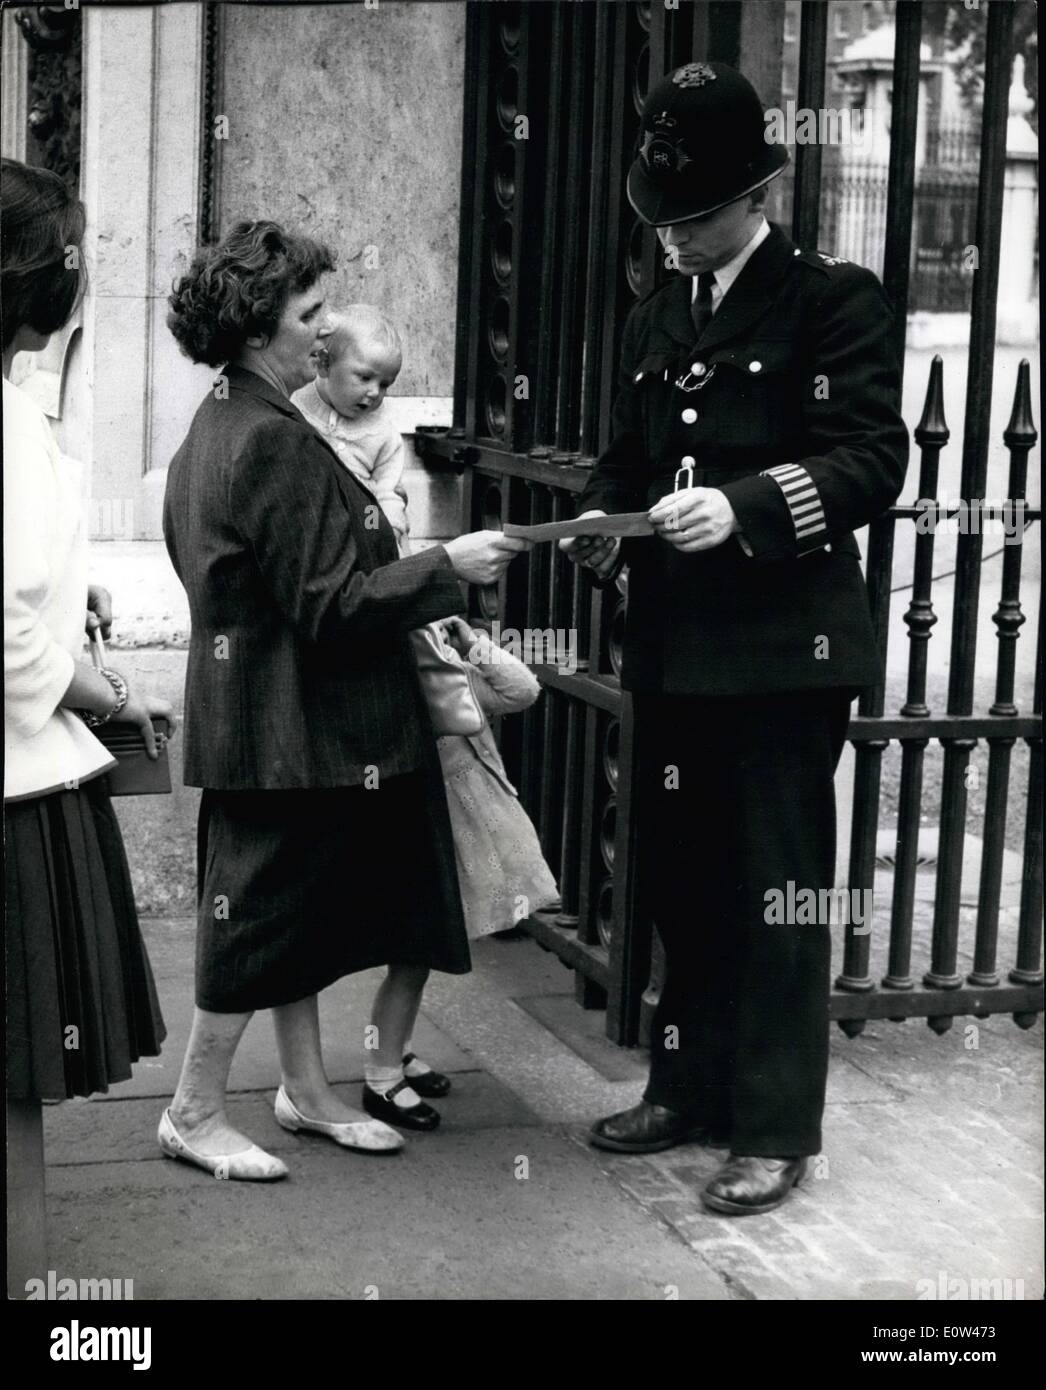 Jun. 06, 1961 - Mrs. Riley Takes Protest To Buckingham Palace... Mrs. Doreen Riley (43) of Withington , Manchester arrived in London to protest to Sir David Eccles the Minister of Education - because planners want to lop 22ft, off her garden to extend a school playground... Sir David Eccles was not in - and so Mrs. Riley went to Buckingham Palace to deliver her protest to the Queen - but the policeman on the gate said he could not accept to protest - which was addressed to H.M. The Queen. Keystone Photo Shows:- Mrs - Stock Image